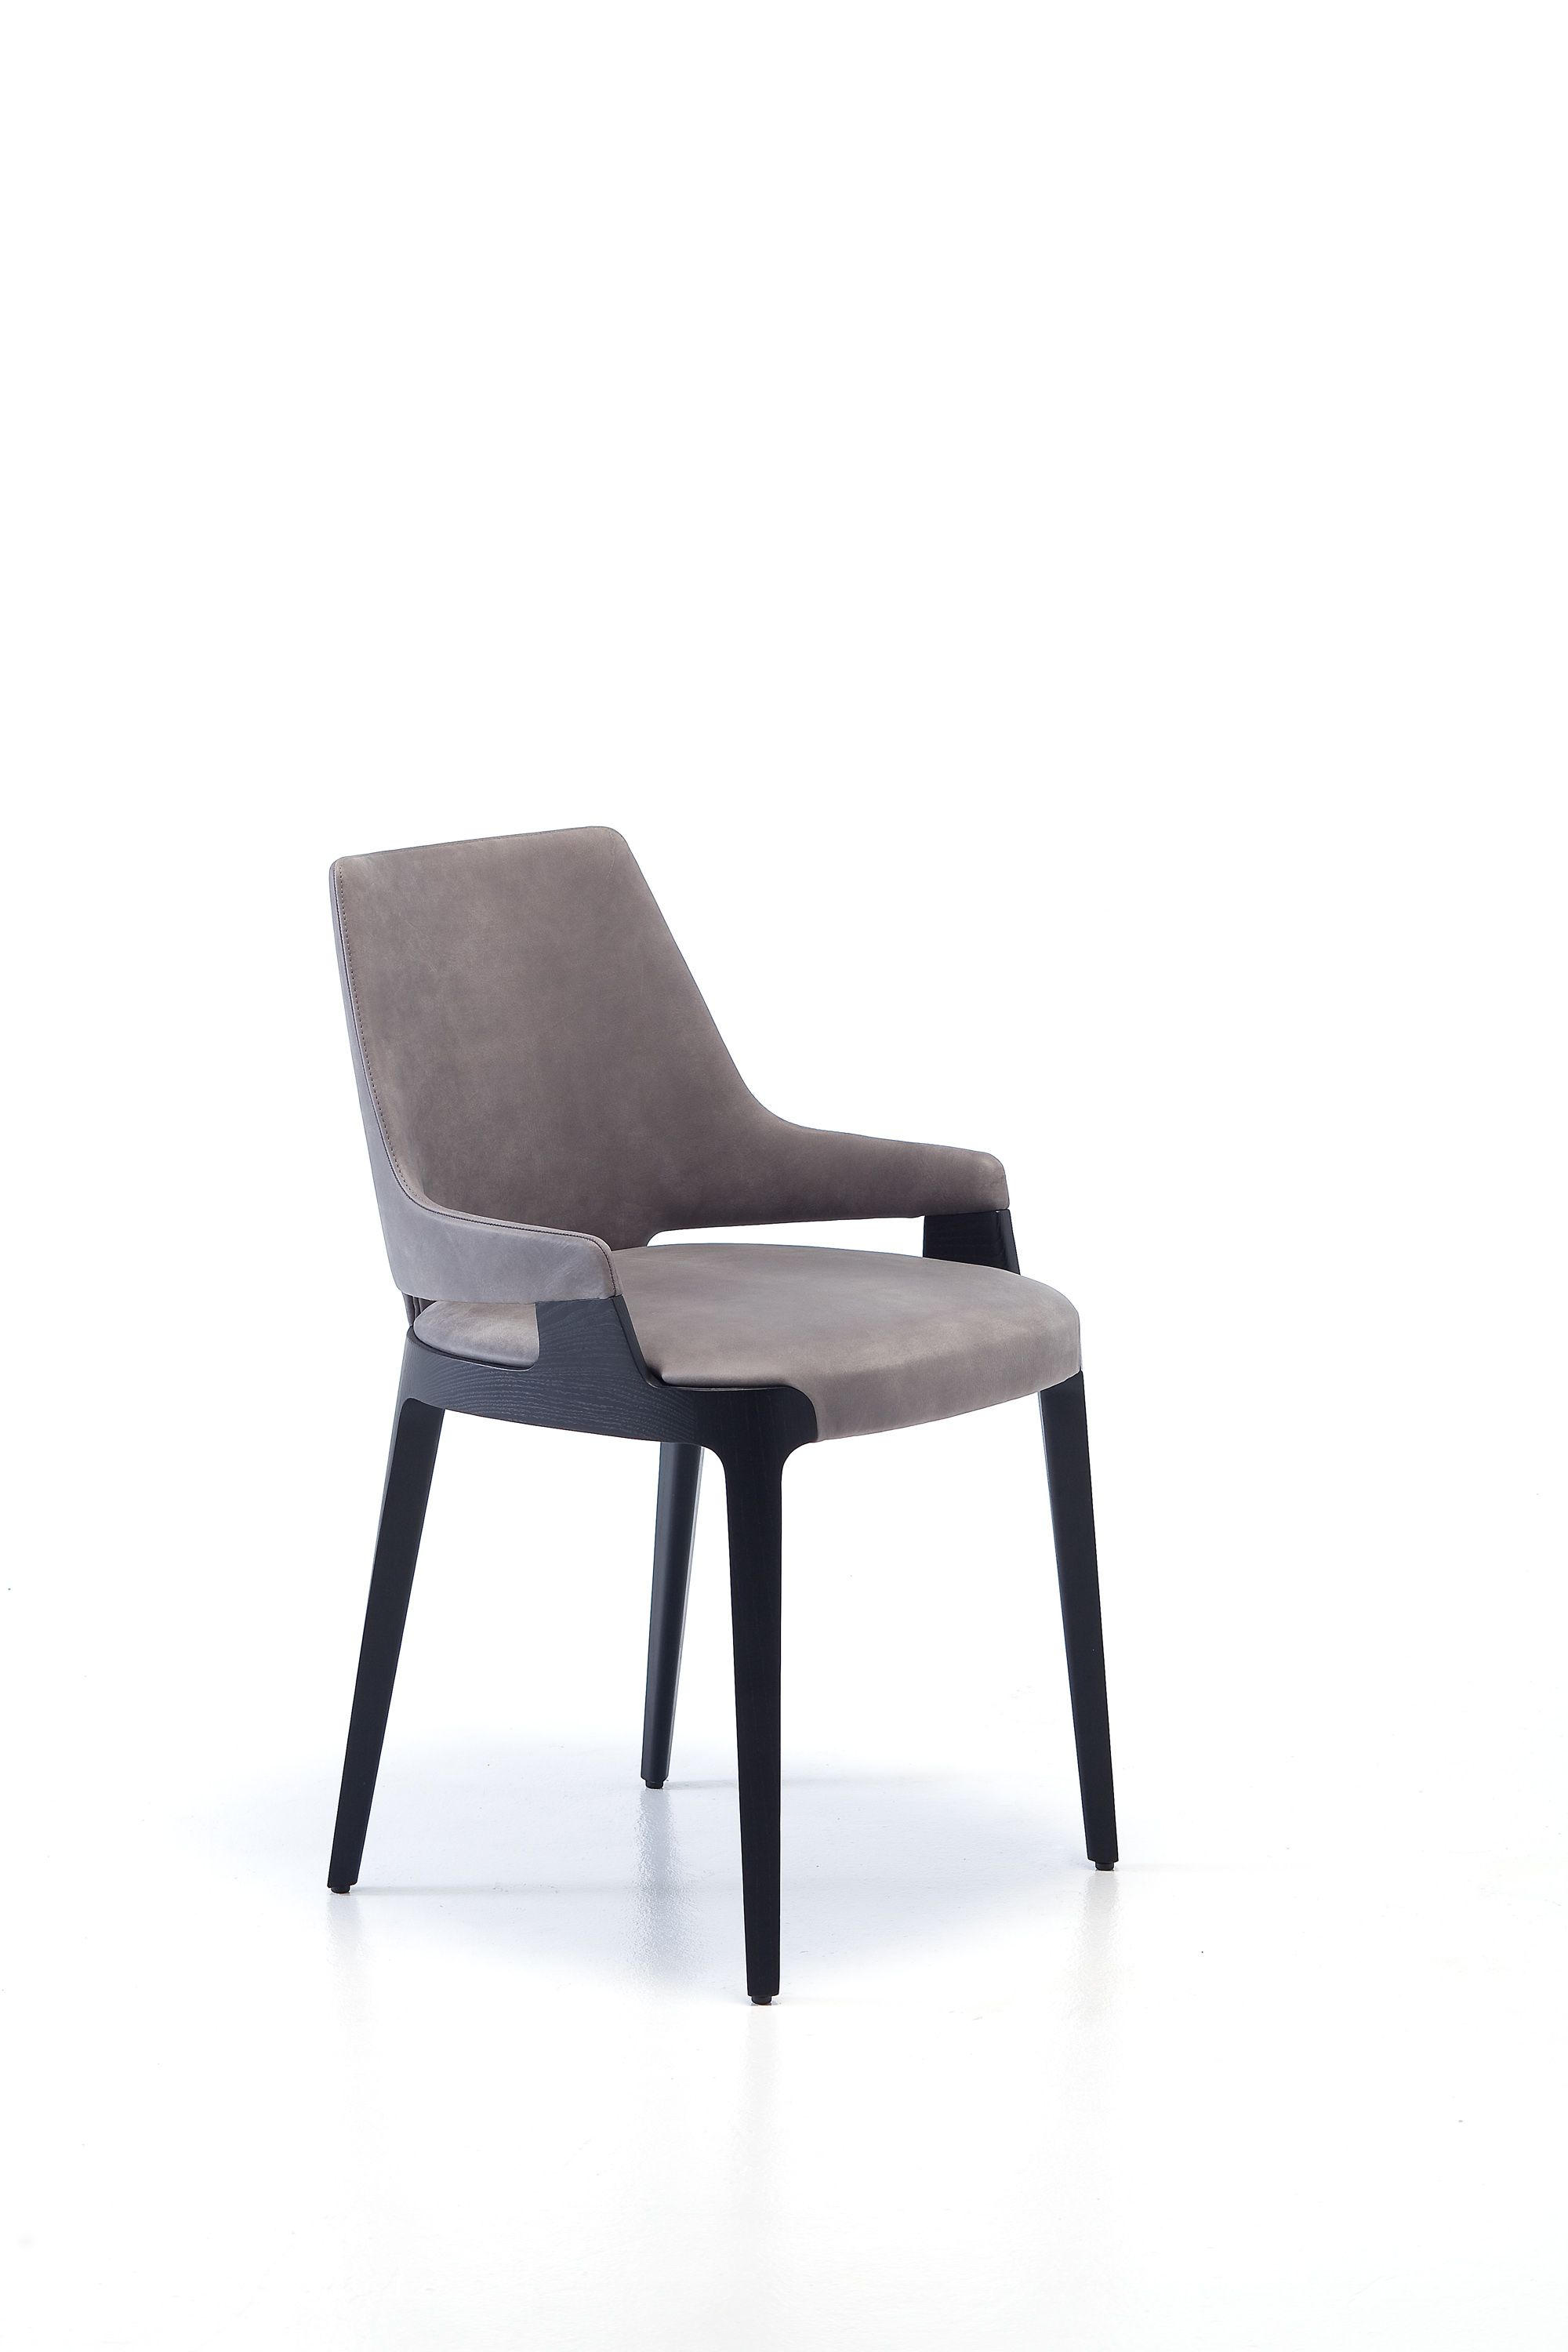 Elegant Chairs Dining Chair A Elegant Dining Chair For A Luxury Dining